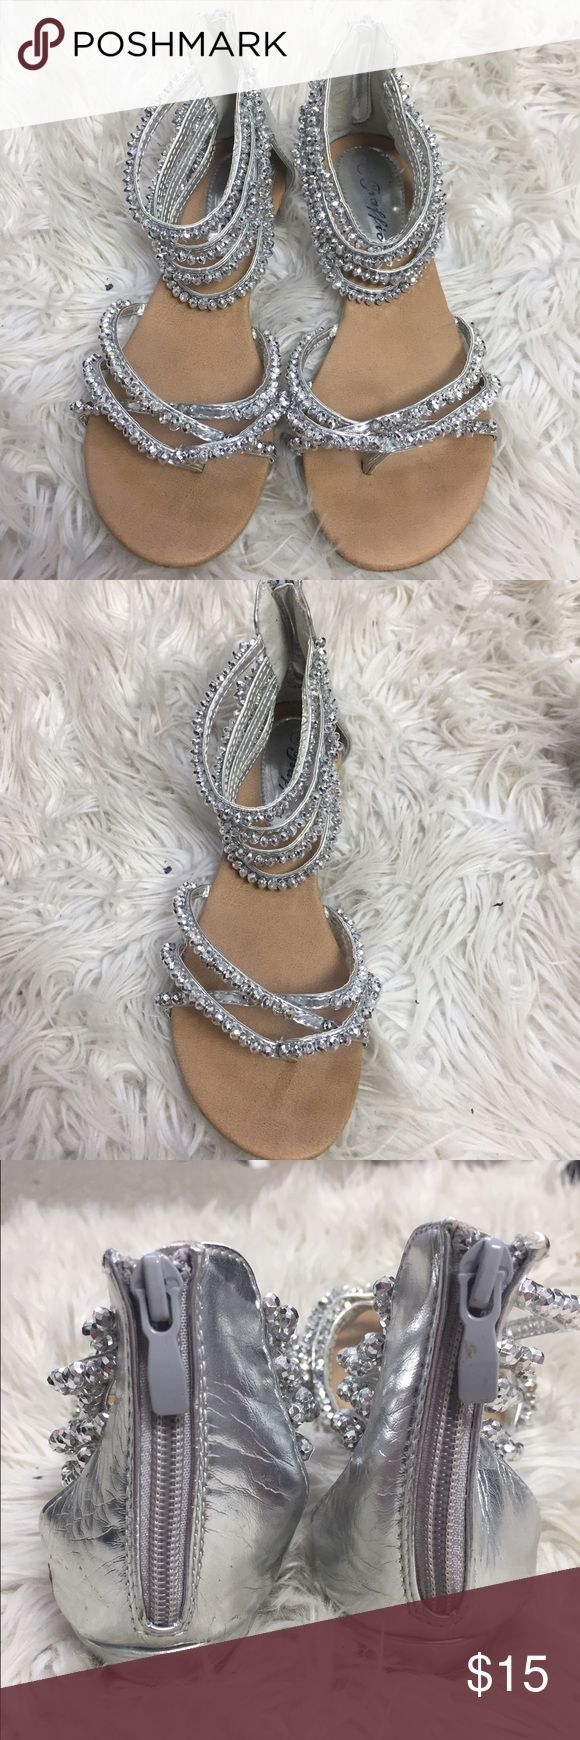 Silver rhinestone sandals worn ONLY ONCE Wore these for prom, super comfortable and received a lot of compliments on them! Traffic Shoes Sandals